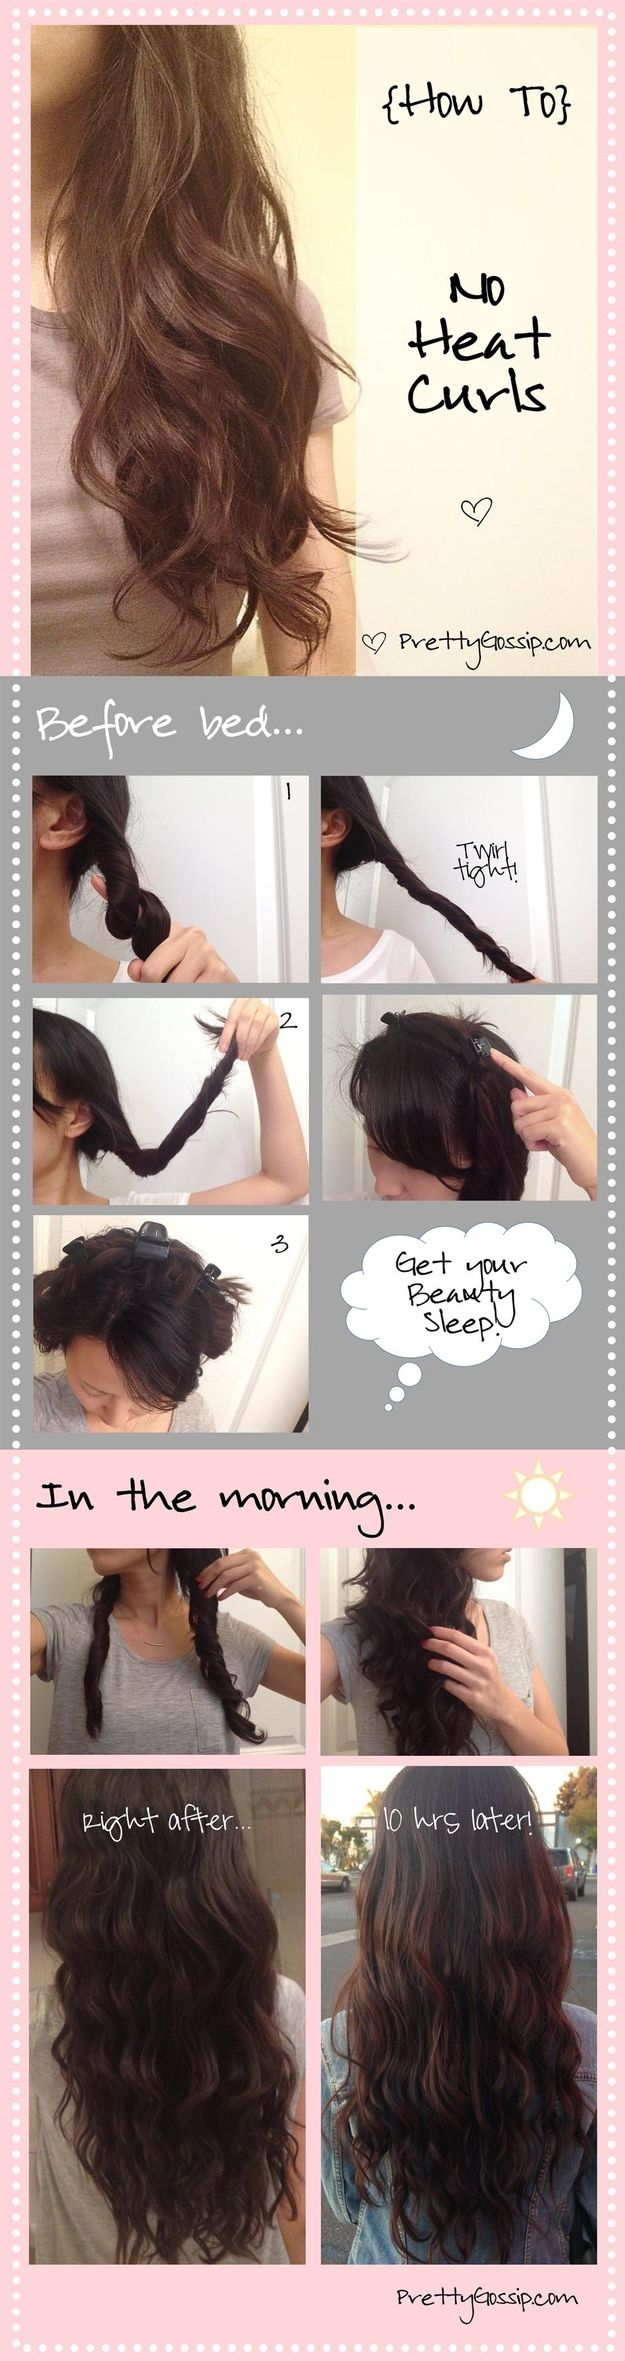 Dummy proof hair tips/tricks/styles